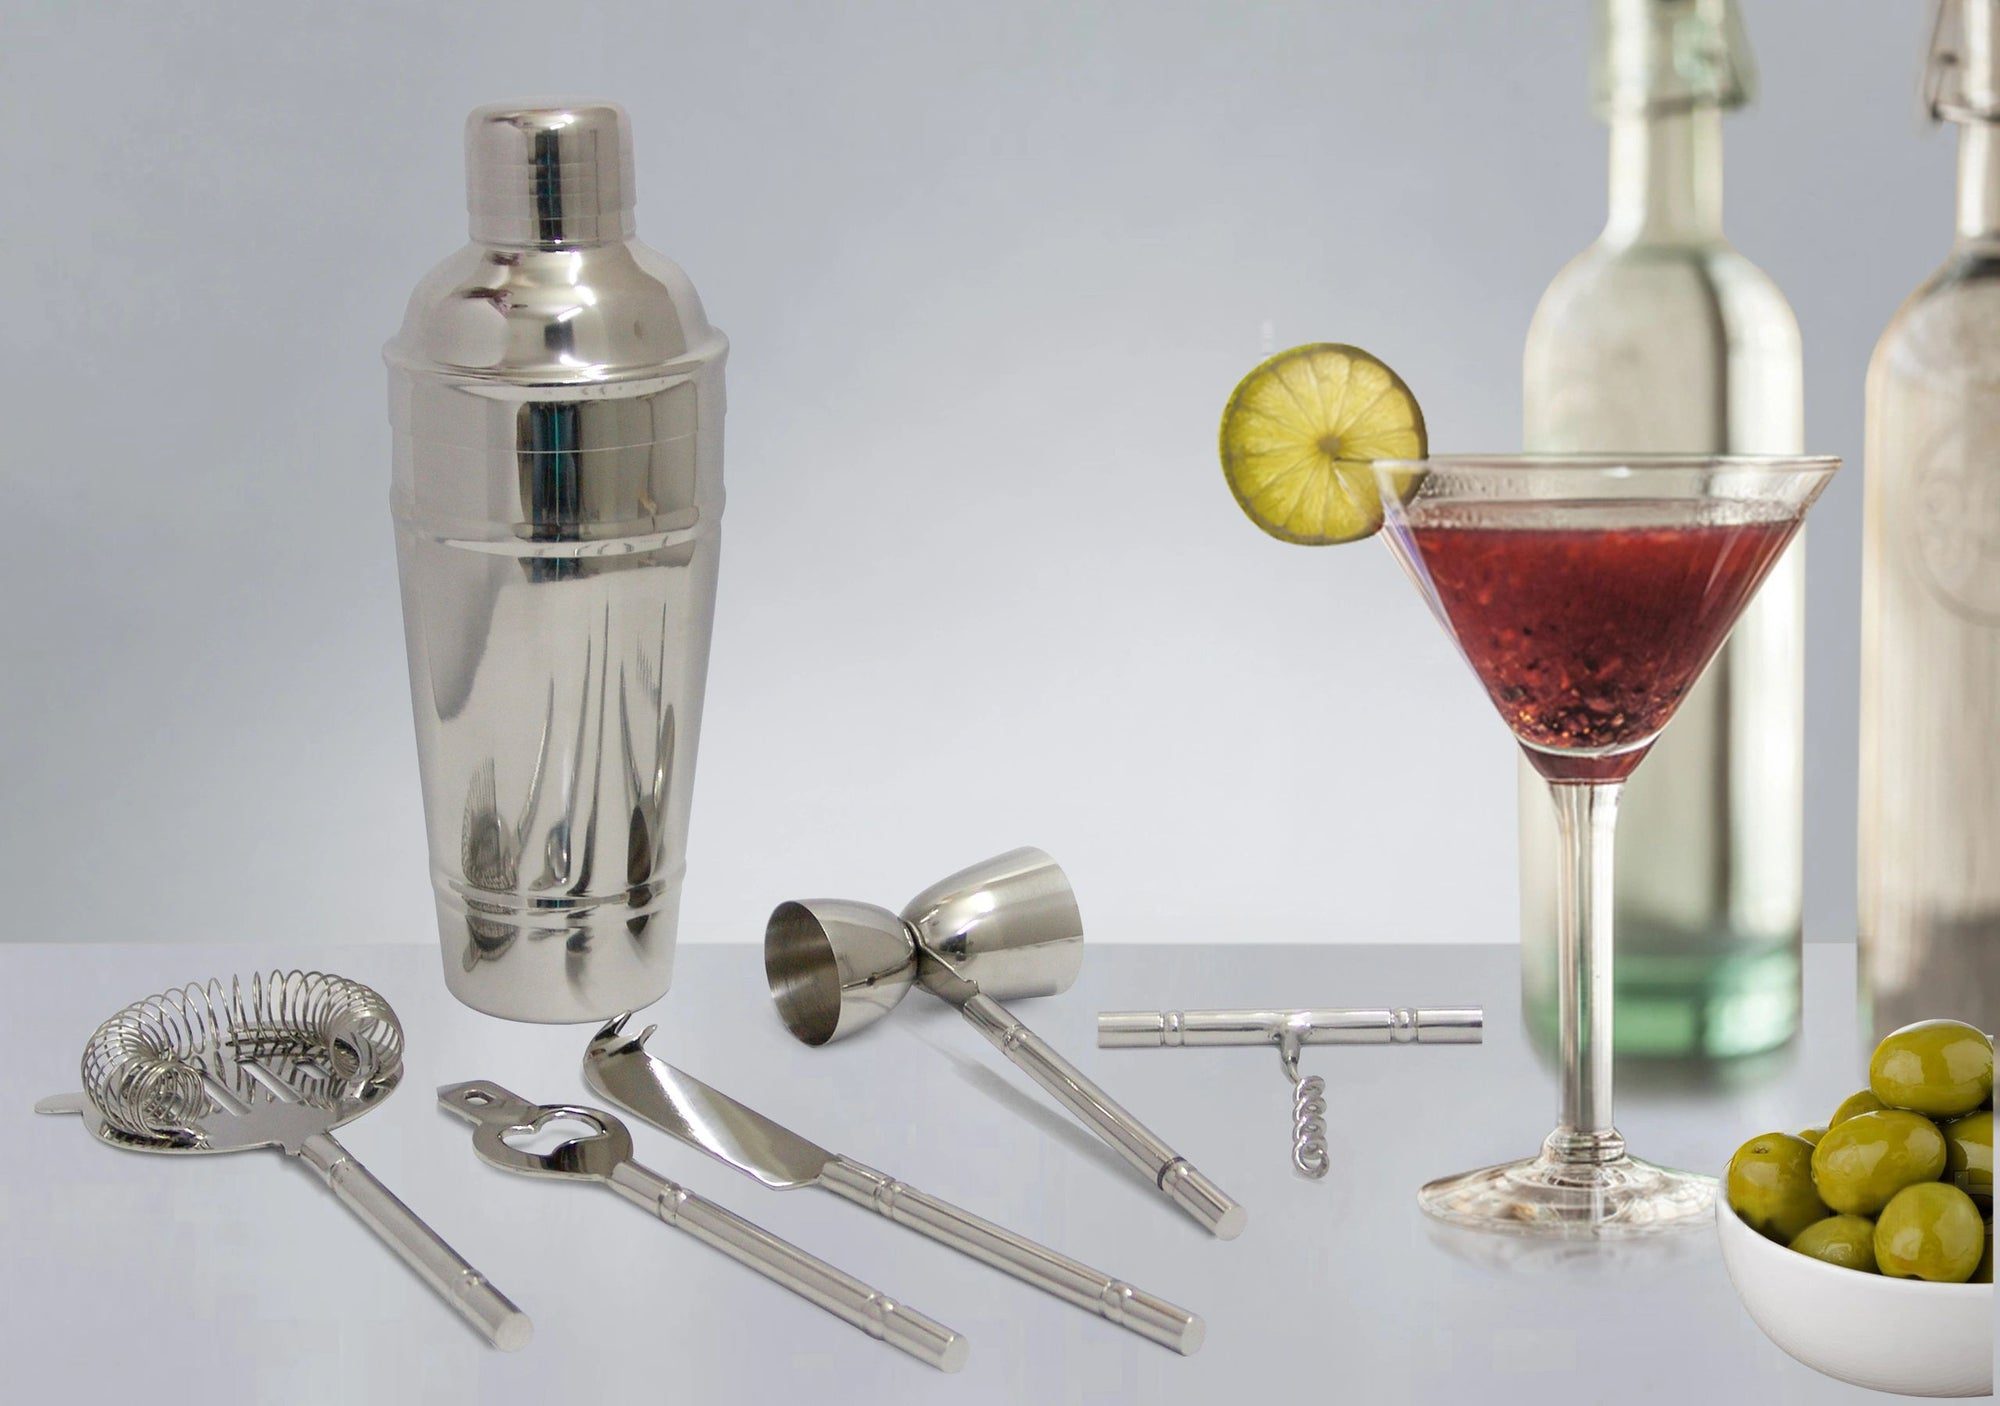 TG-CS-533SS Double band Cocktail shaker stainless steel